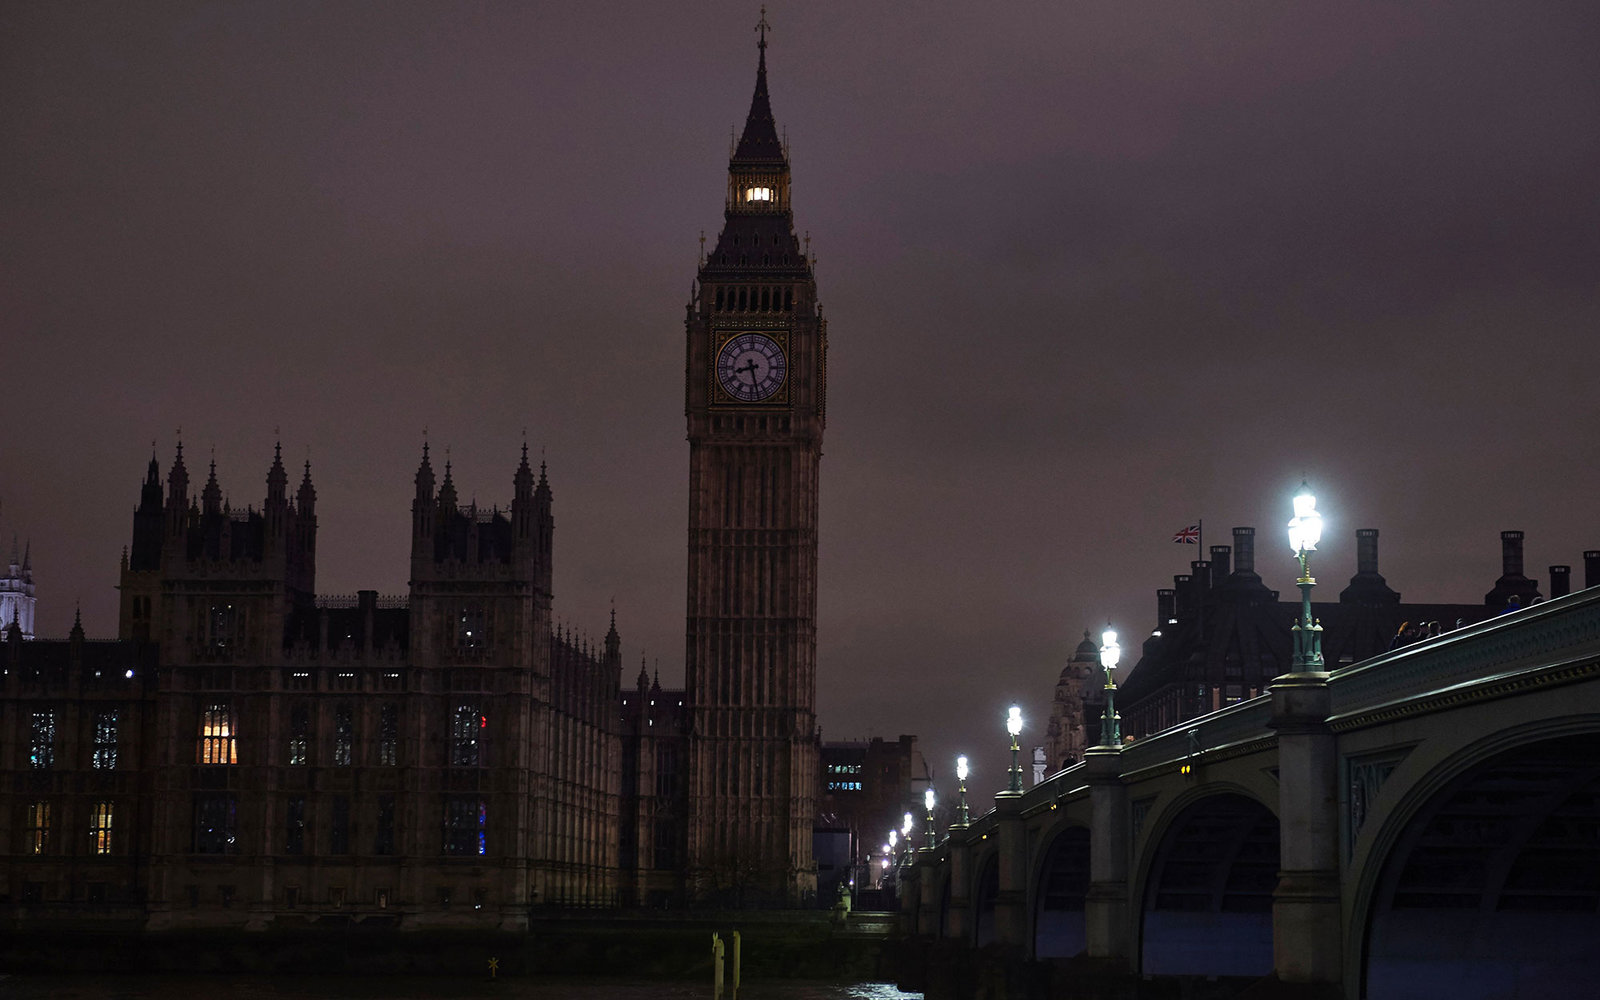 A picture taken on March 19, 2016, in central London, shows Britain's Houses of Parliament after being submerged into darkness for the Earth Hour environmental campaign.Millions are expected to take part around the world in the annual event organised by